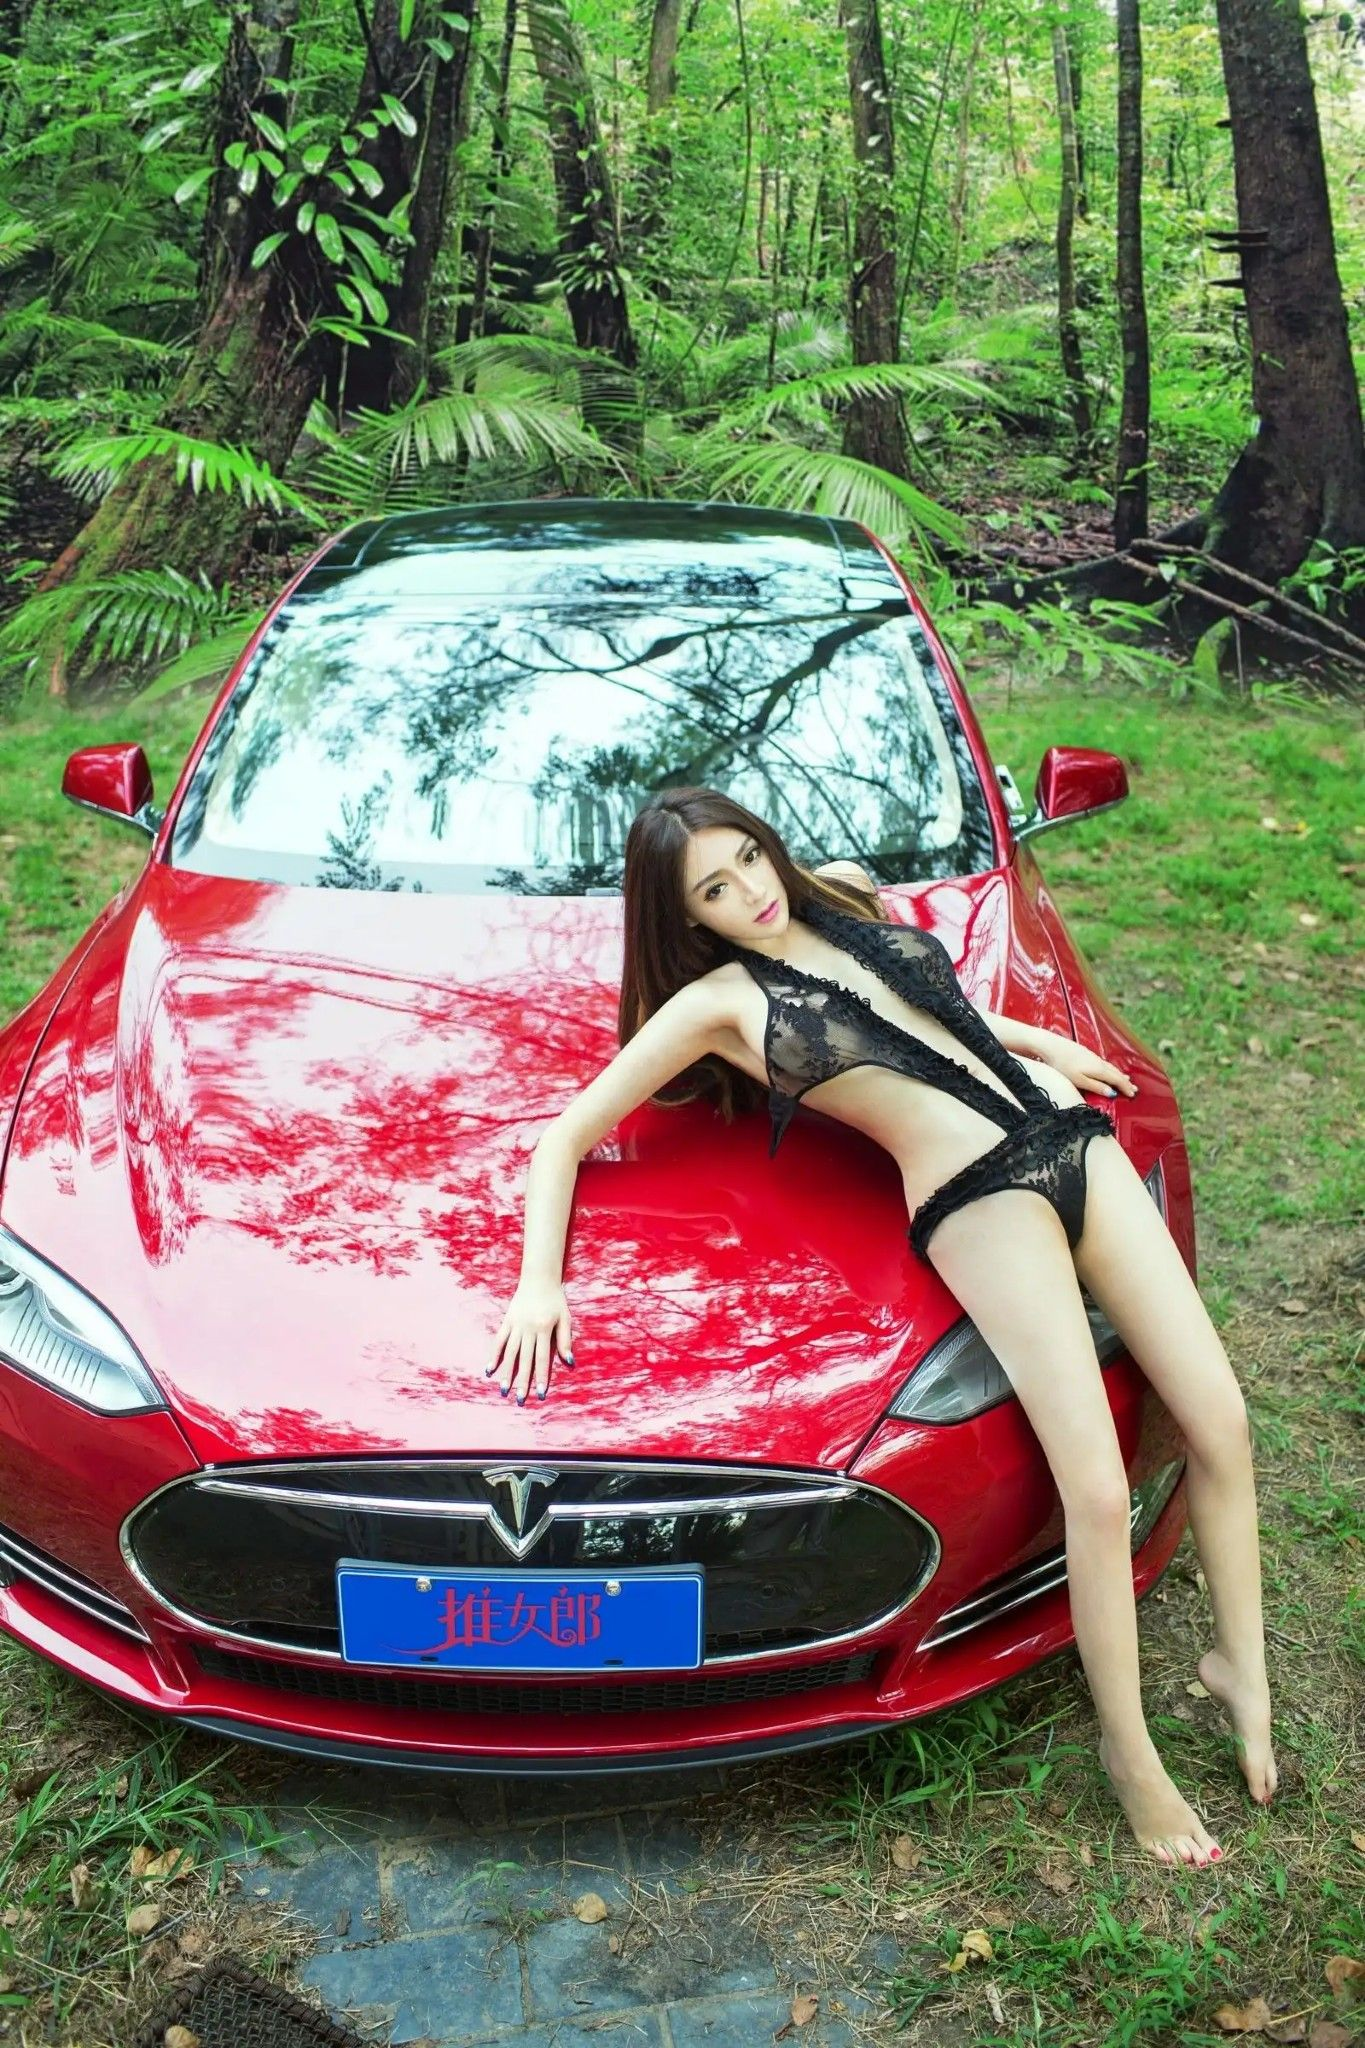 Can Japanese car girls nude join